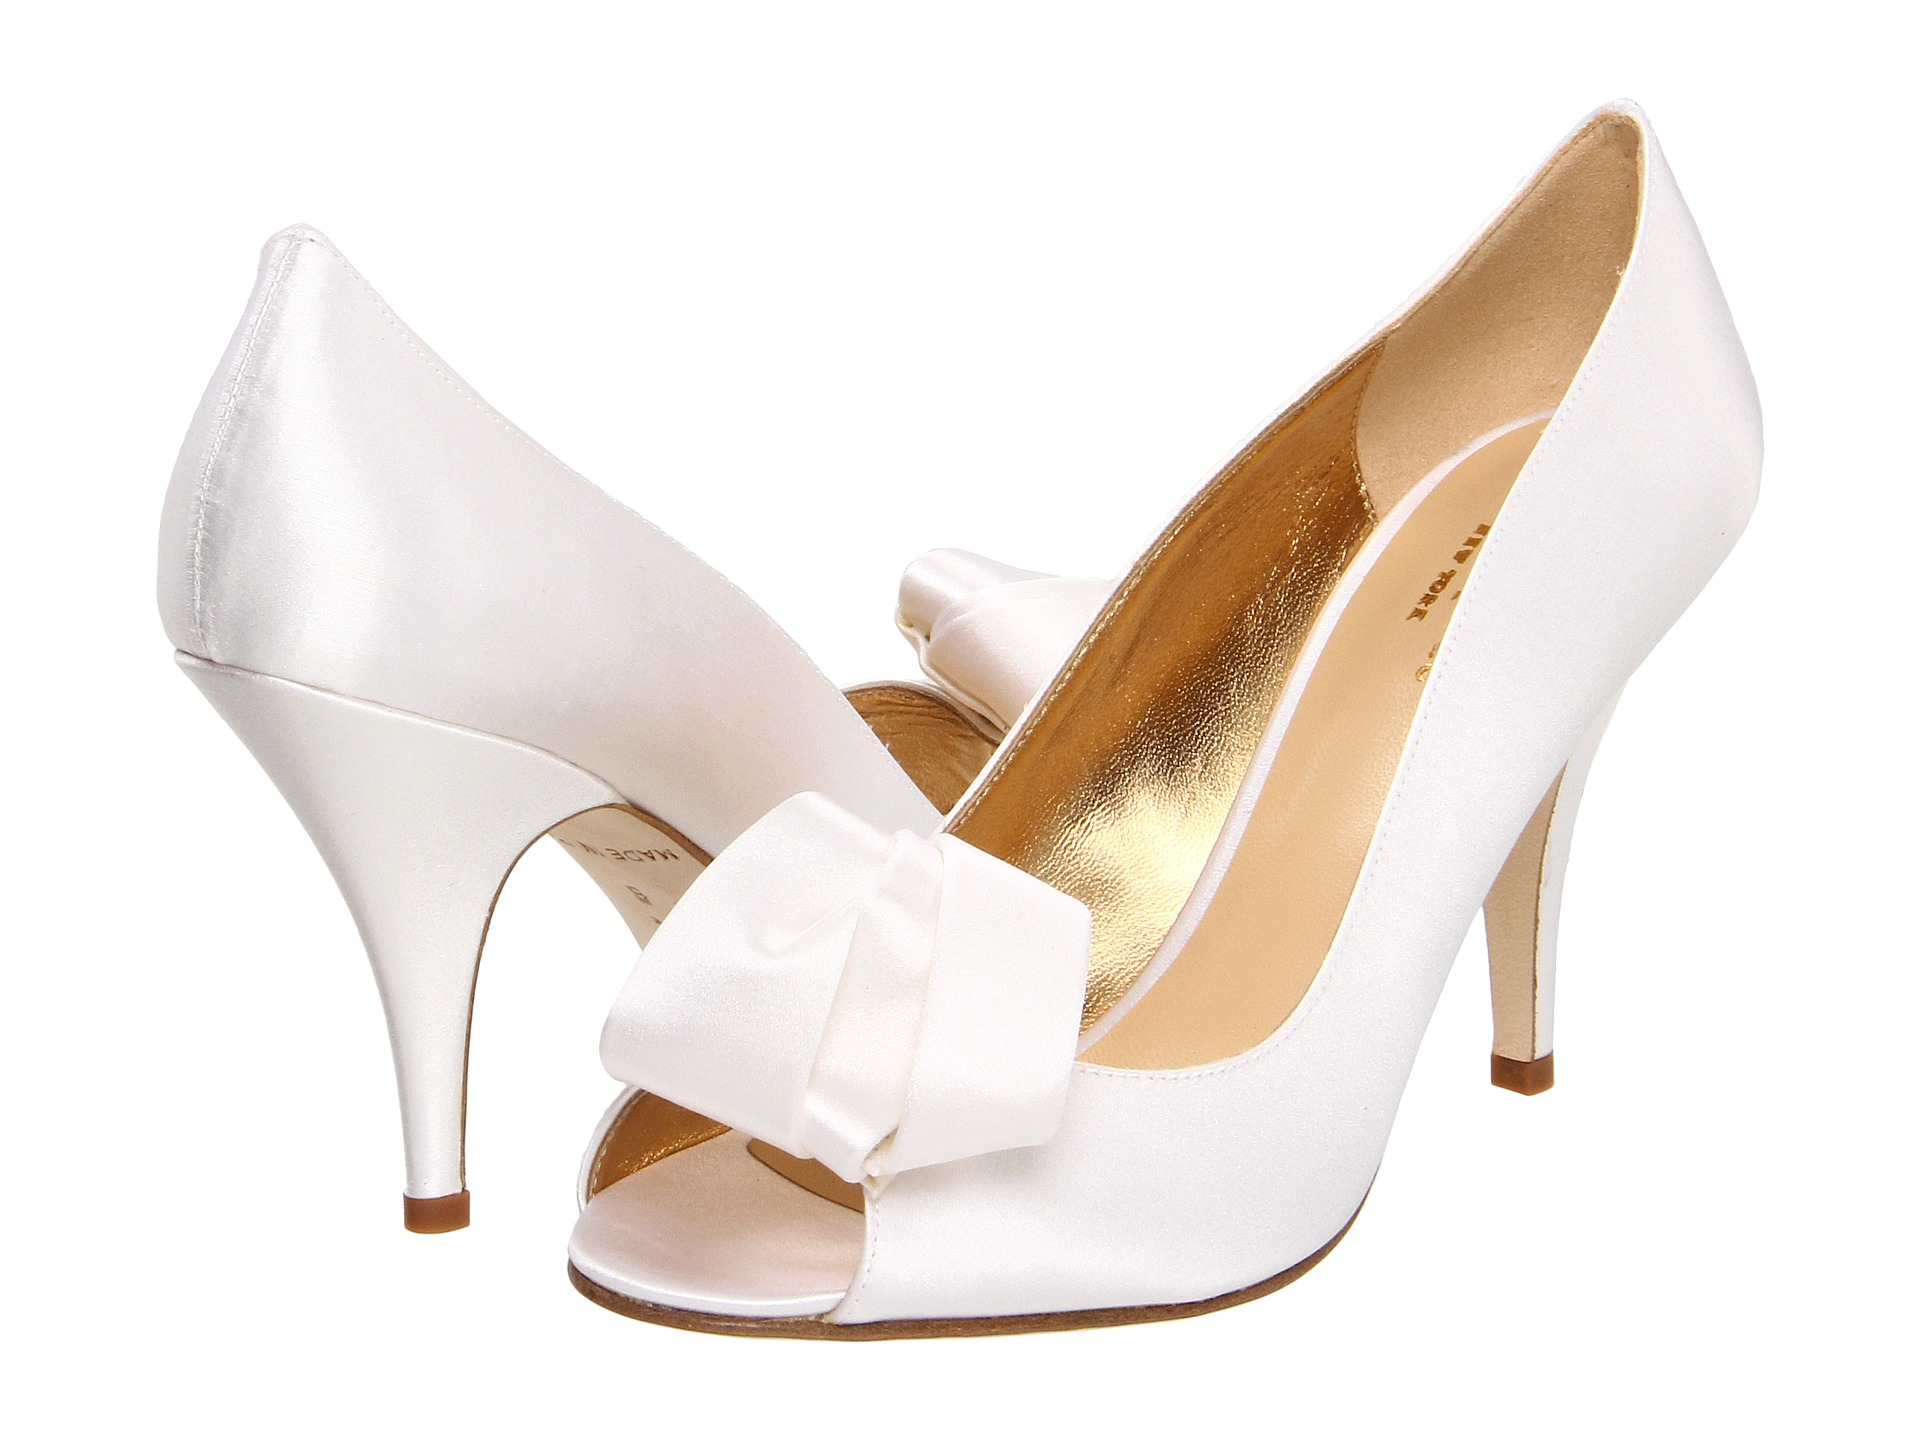 0d8c206b85a6 Lyst - Kate Spade Clarice Pumps in White